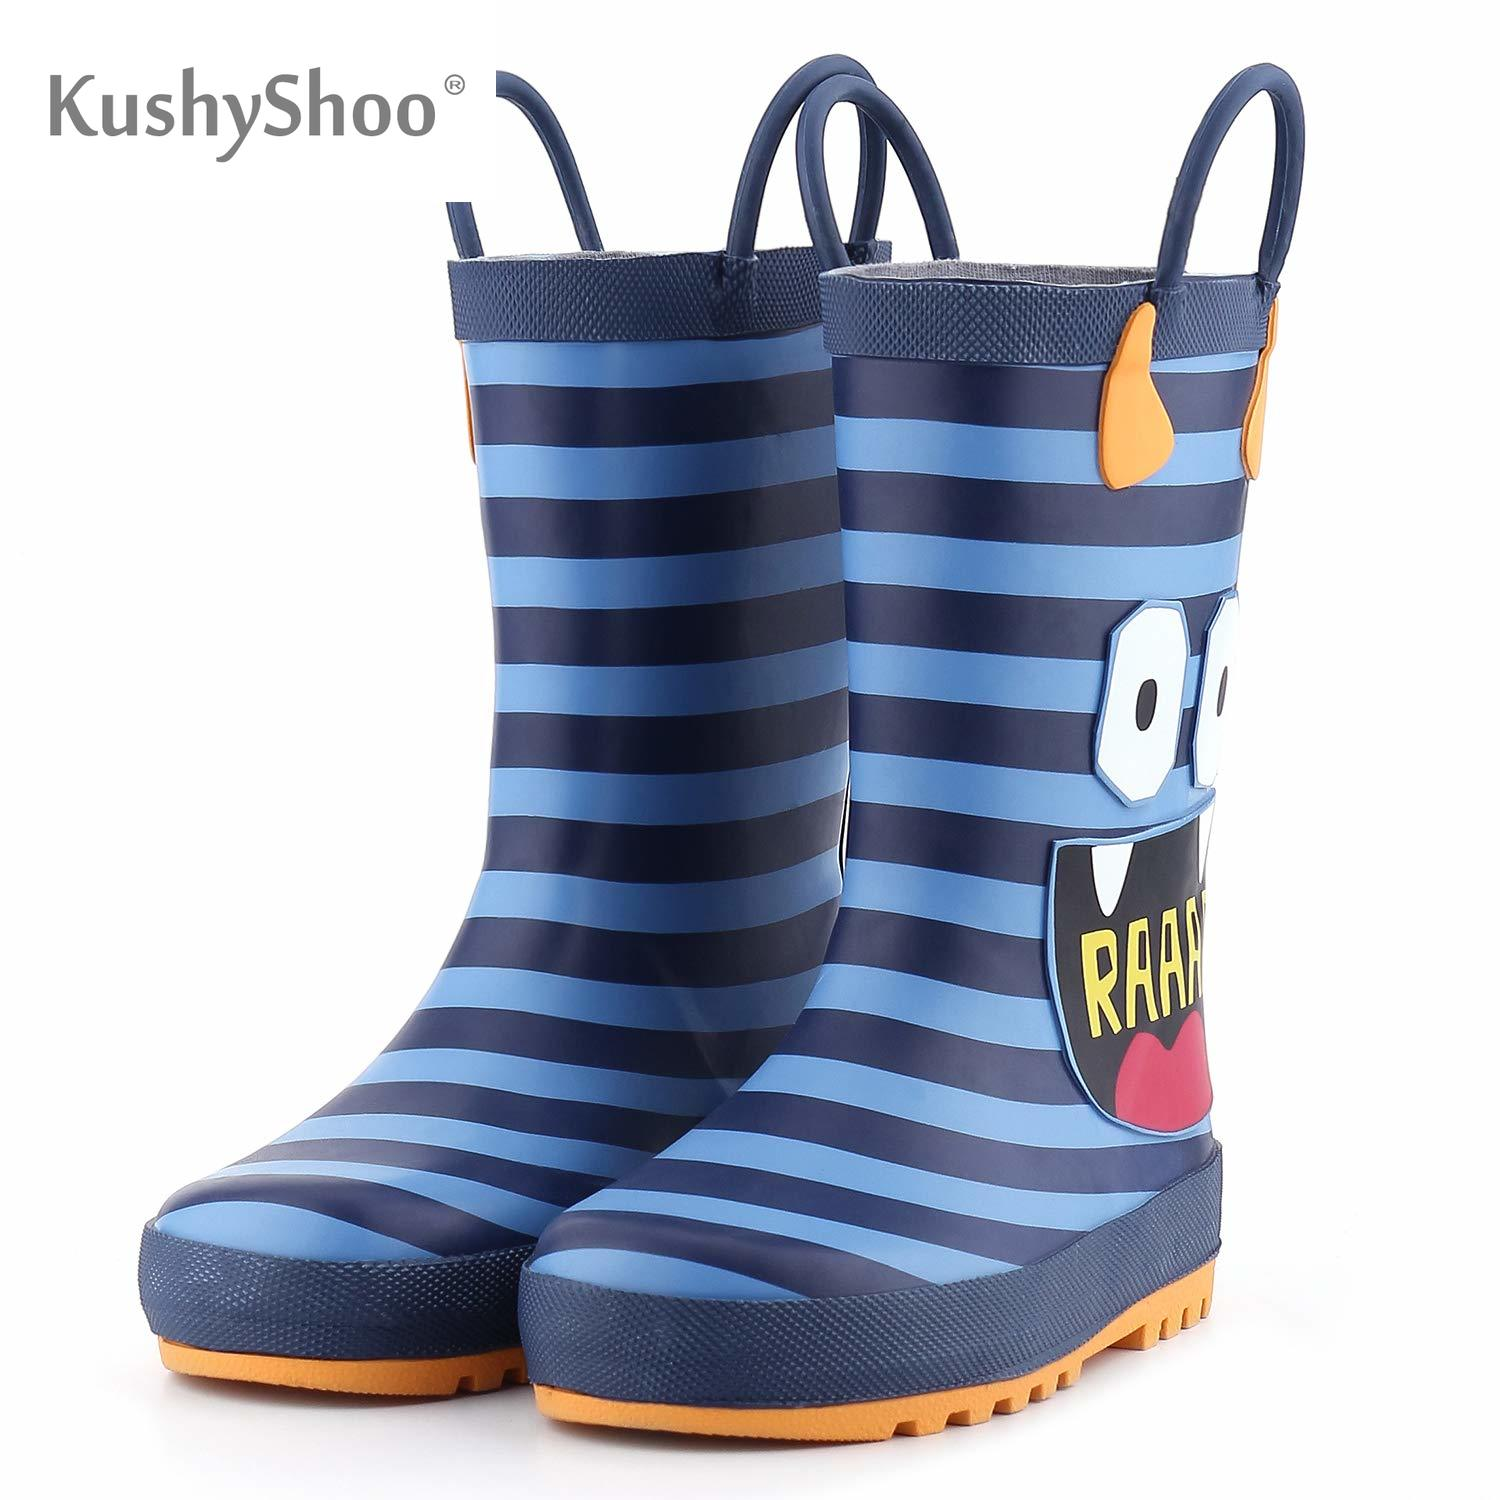 Kushyshoo Boys Boots Water-Shoes Monster-Printed Anti-Slip Toddler Kids Children's 3D